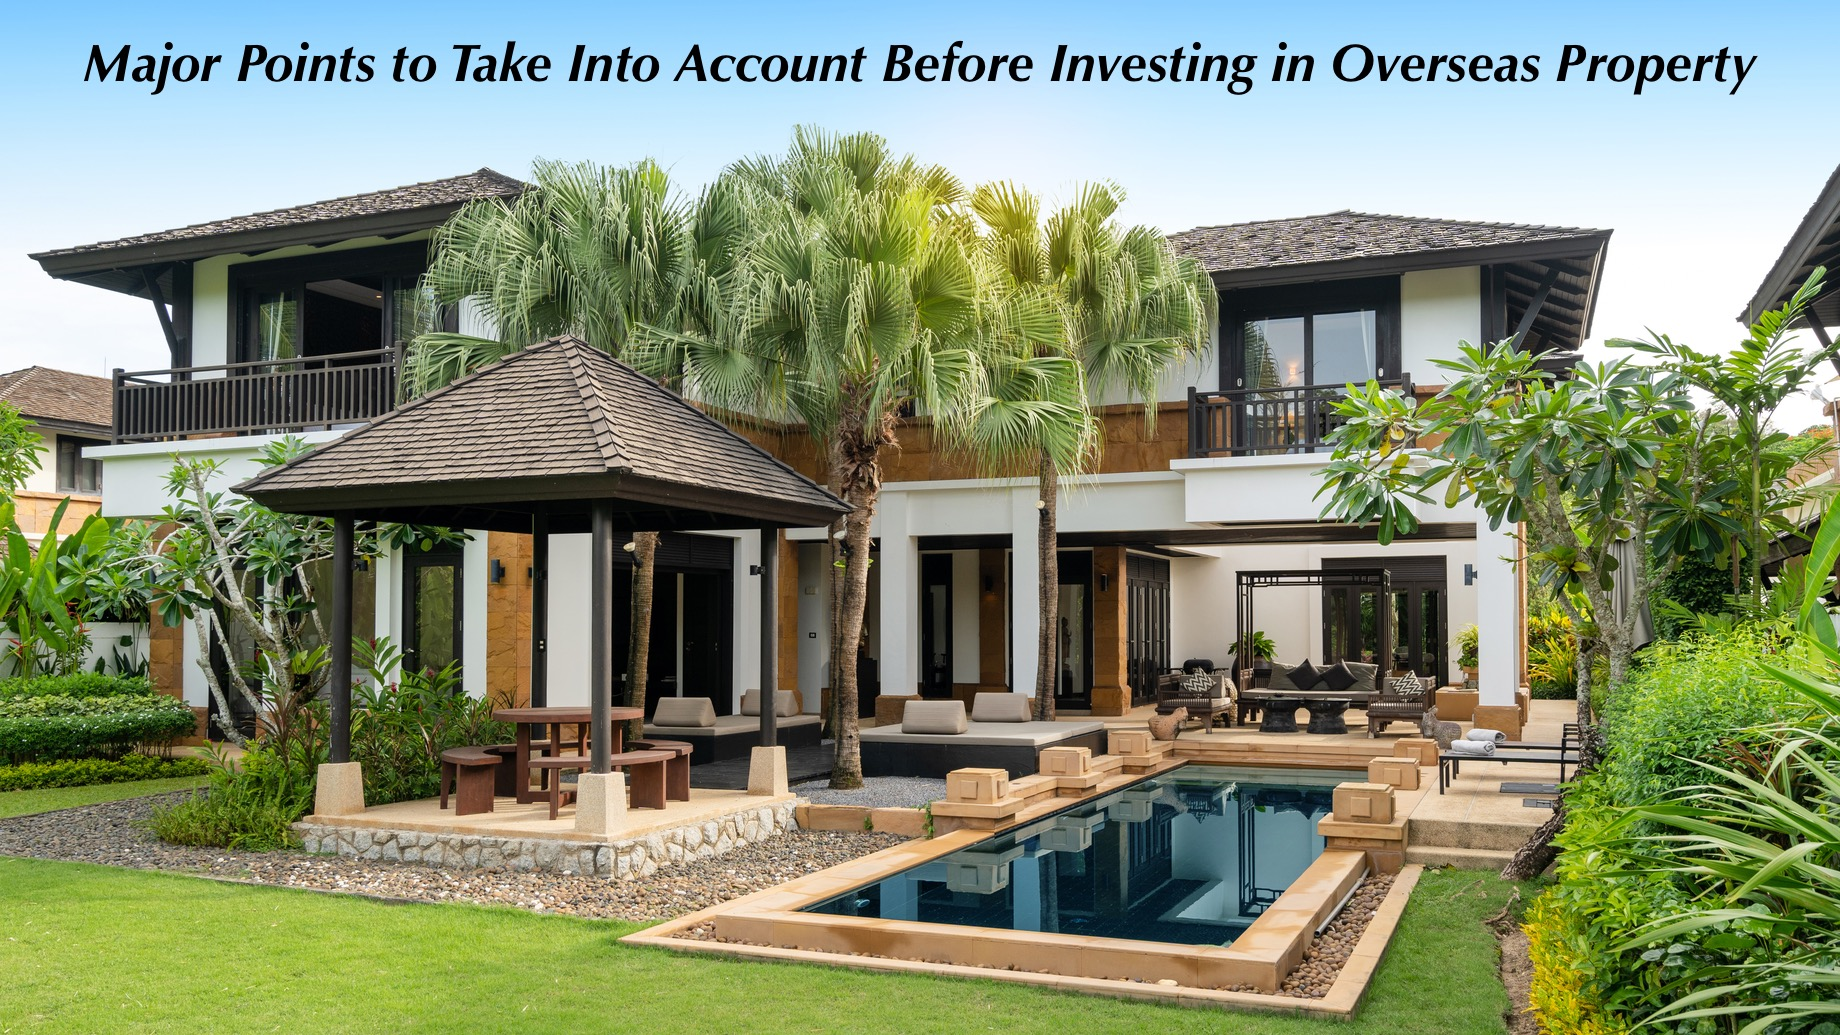 Major Points to Take Into Account Before Investing in Overseas Property